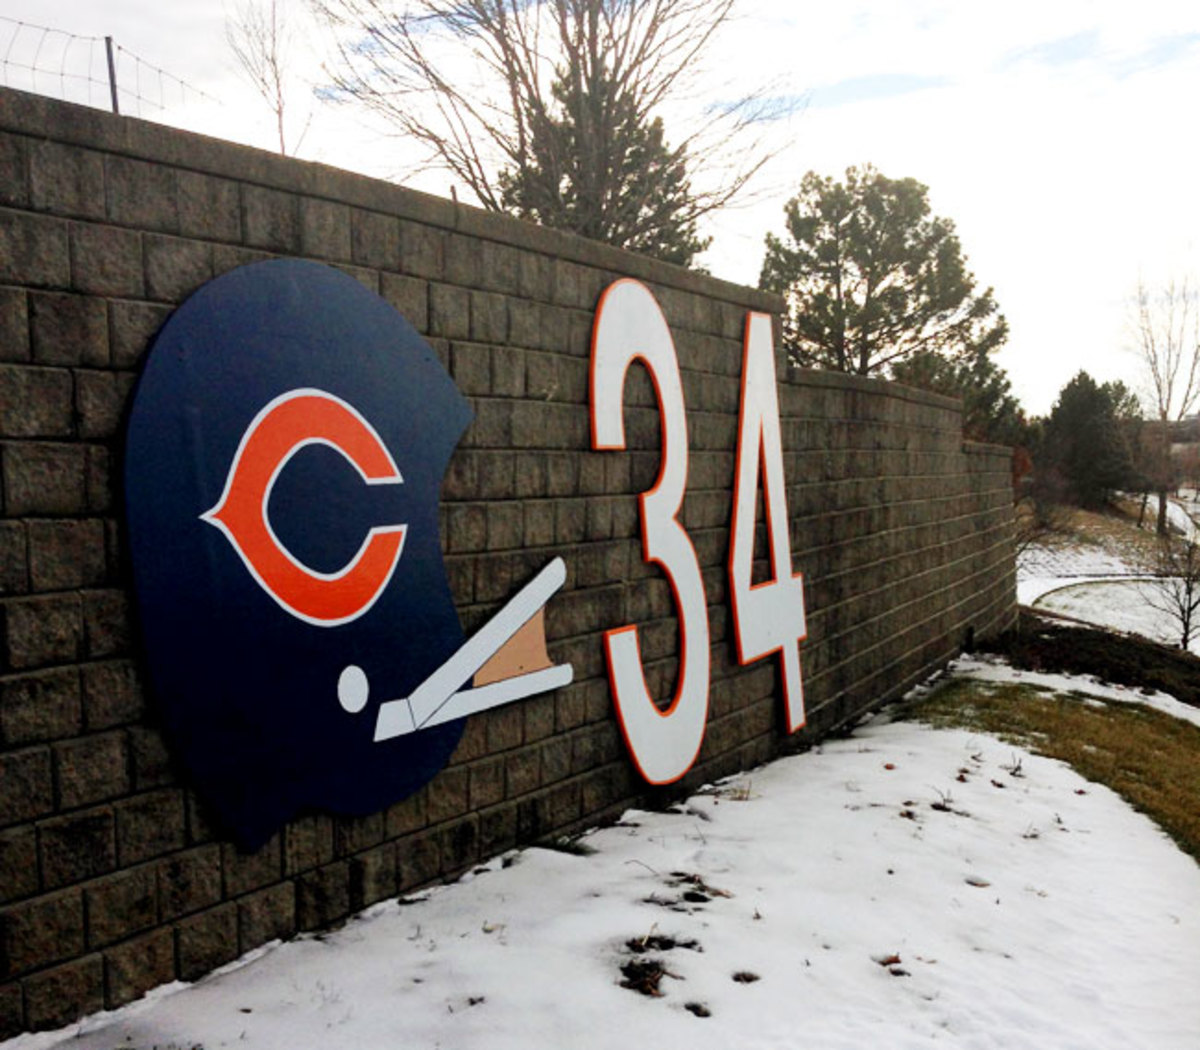 The suburban hill that Walter Payton ran during his legendary workouts now bears his number.